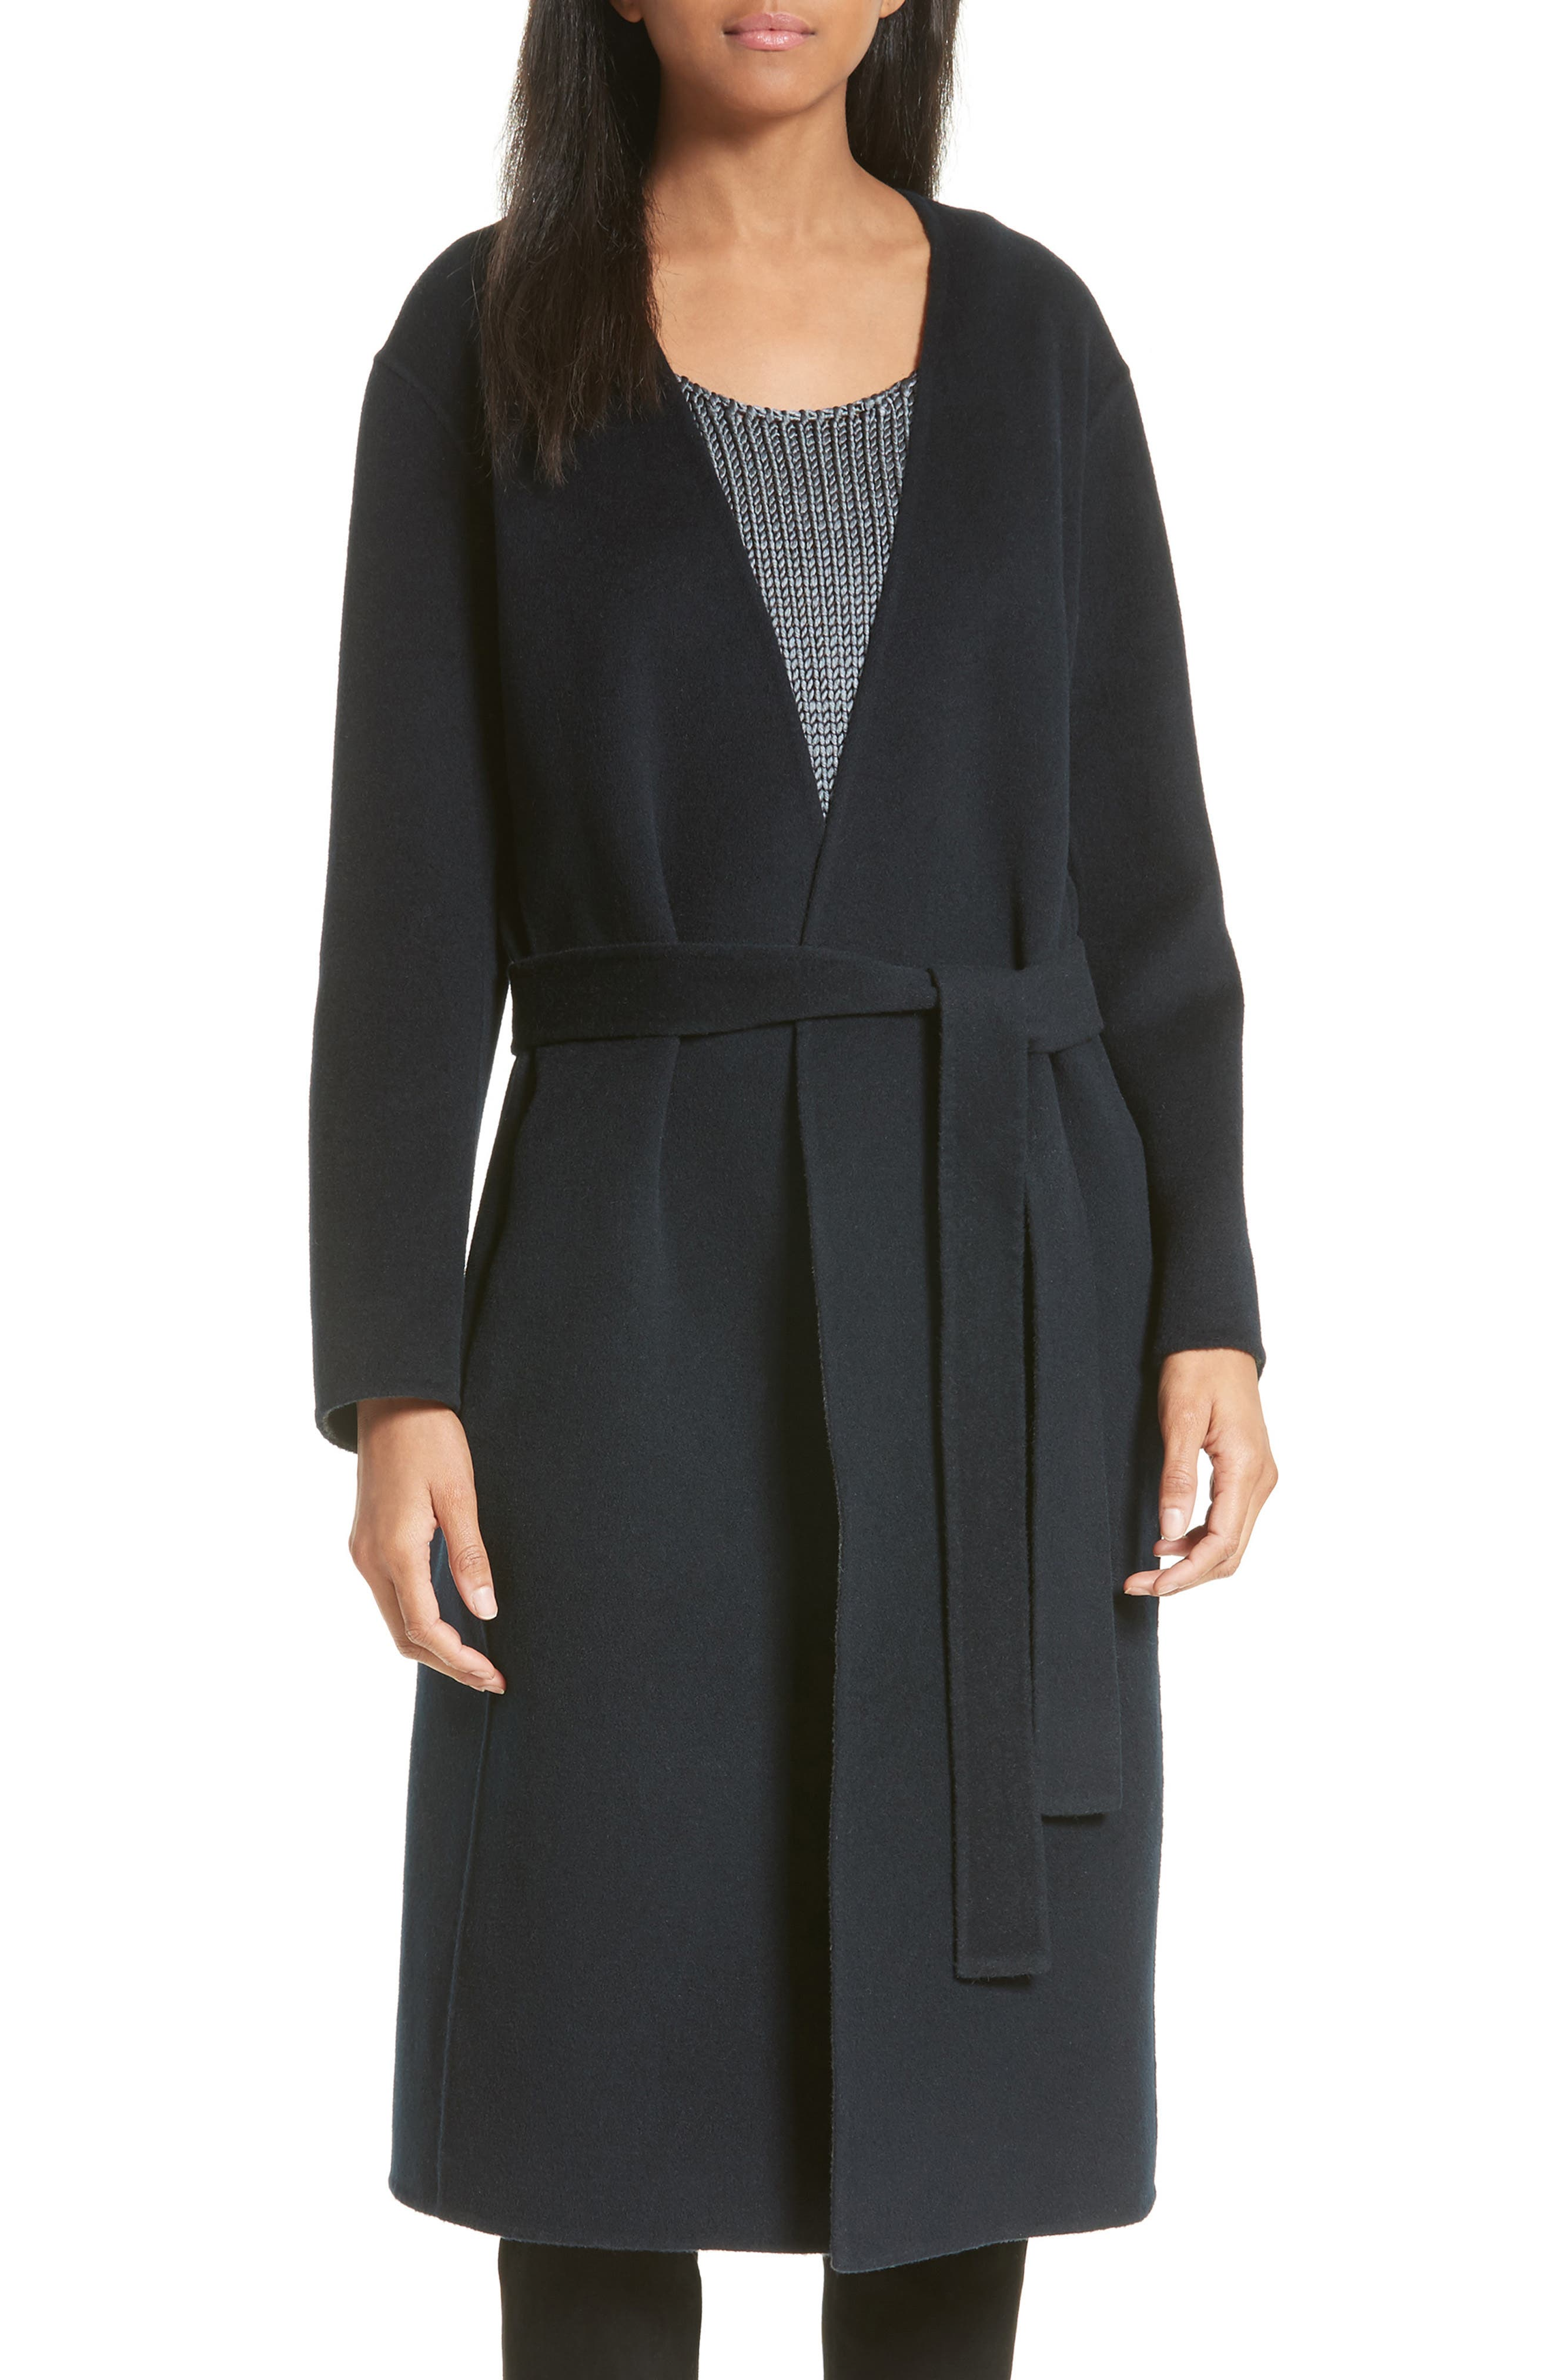 Reversible Wool & Cashmere Belted Coat,                             Main thumbnail 1, color,                             464